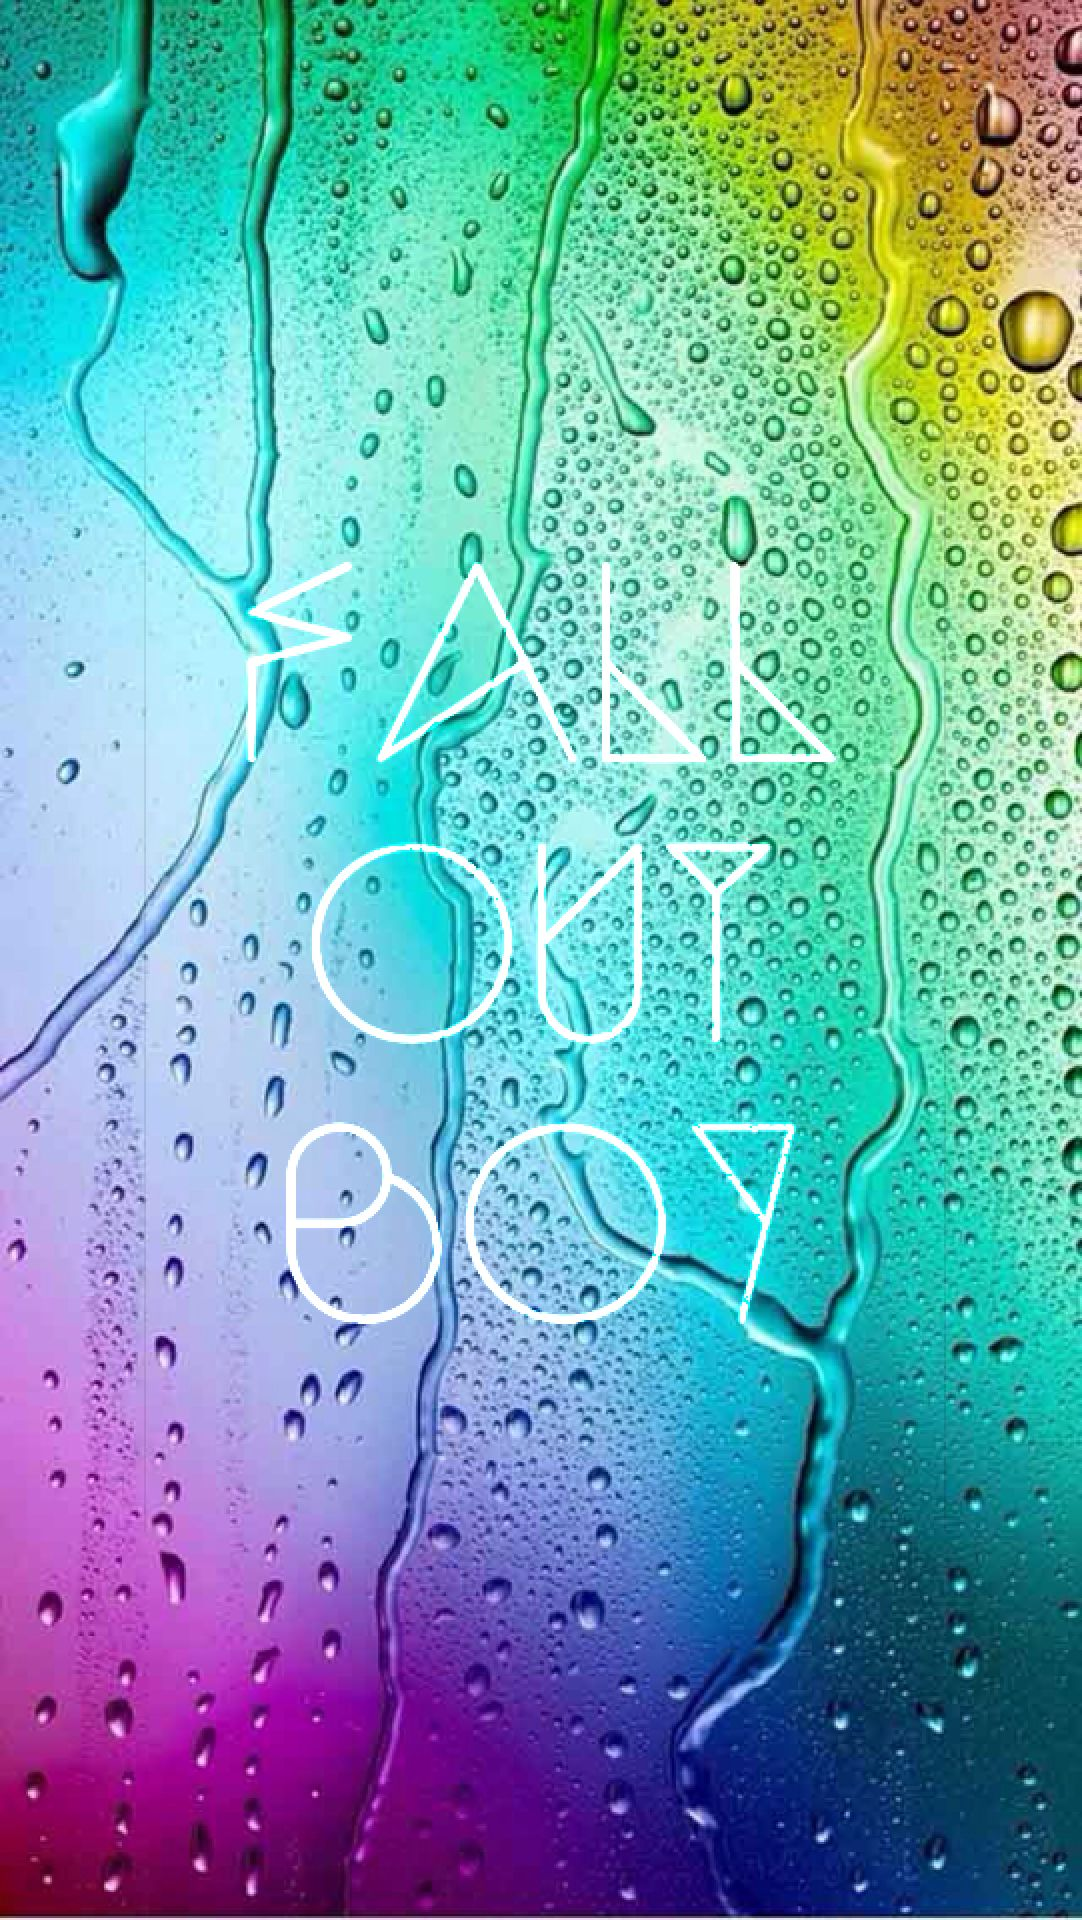 Fall Out Boy iPhone 5 wallpaper that I made... I thought that I should  share | S5 wallpaper, Abstract iphone wallpaper, Rainbow wallpaper